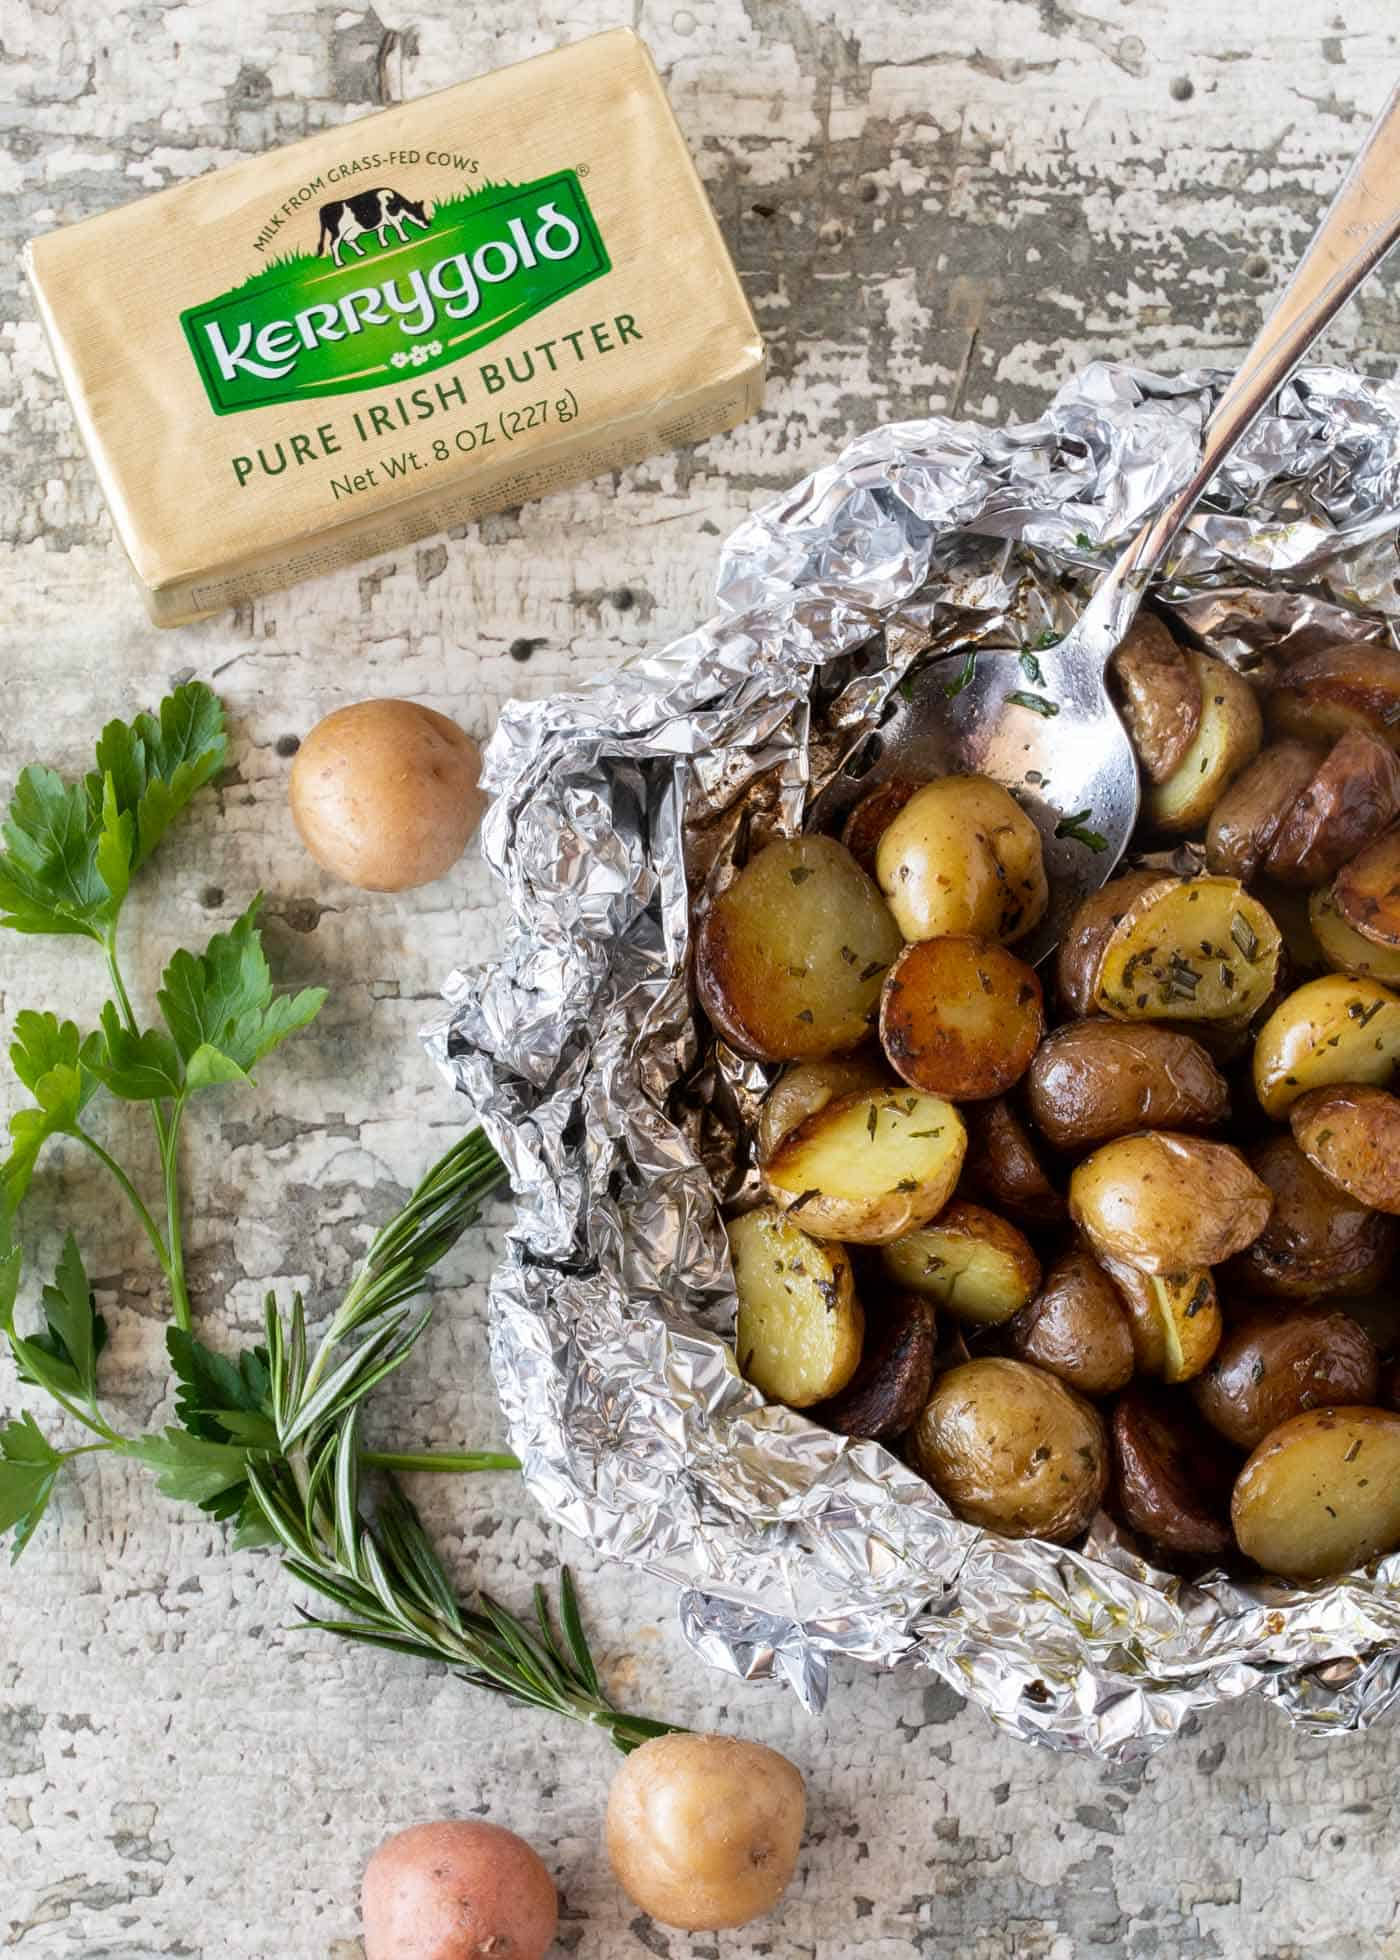 Herbed Grilled Potatoes in Foil packet, garnished with a spoon, fresh rosemary, fresh parsley and next to a block of Kerrygold Salted Butter.